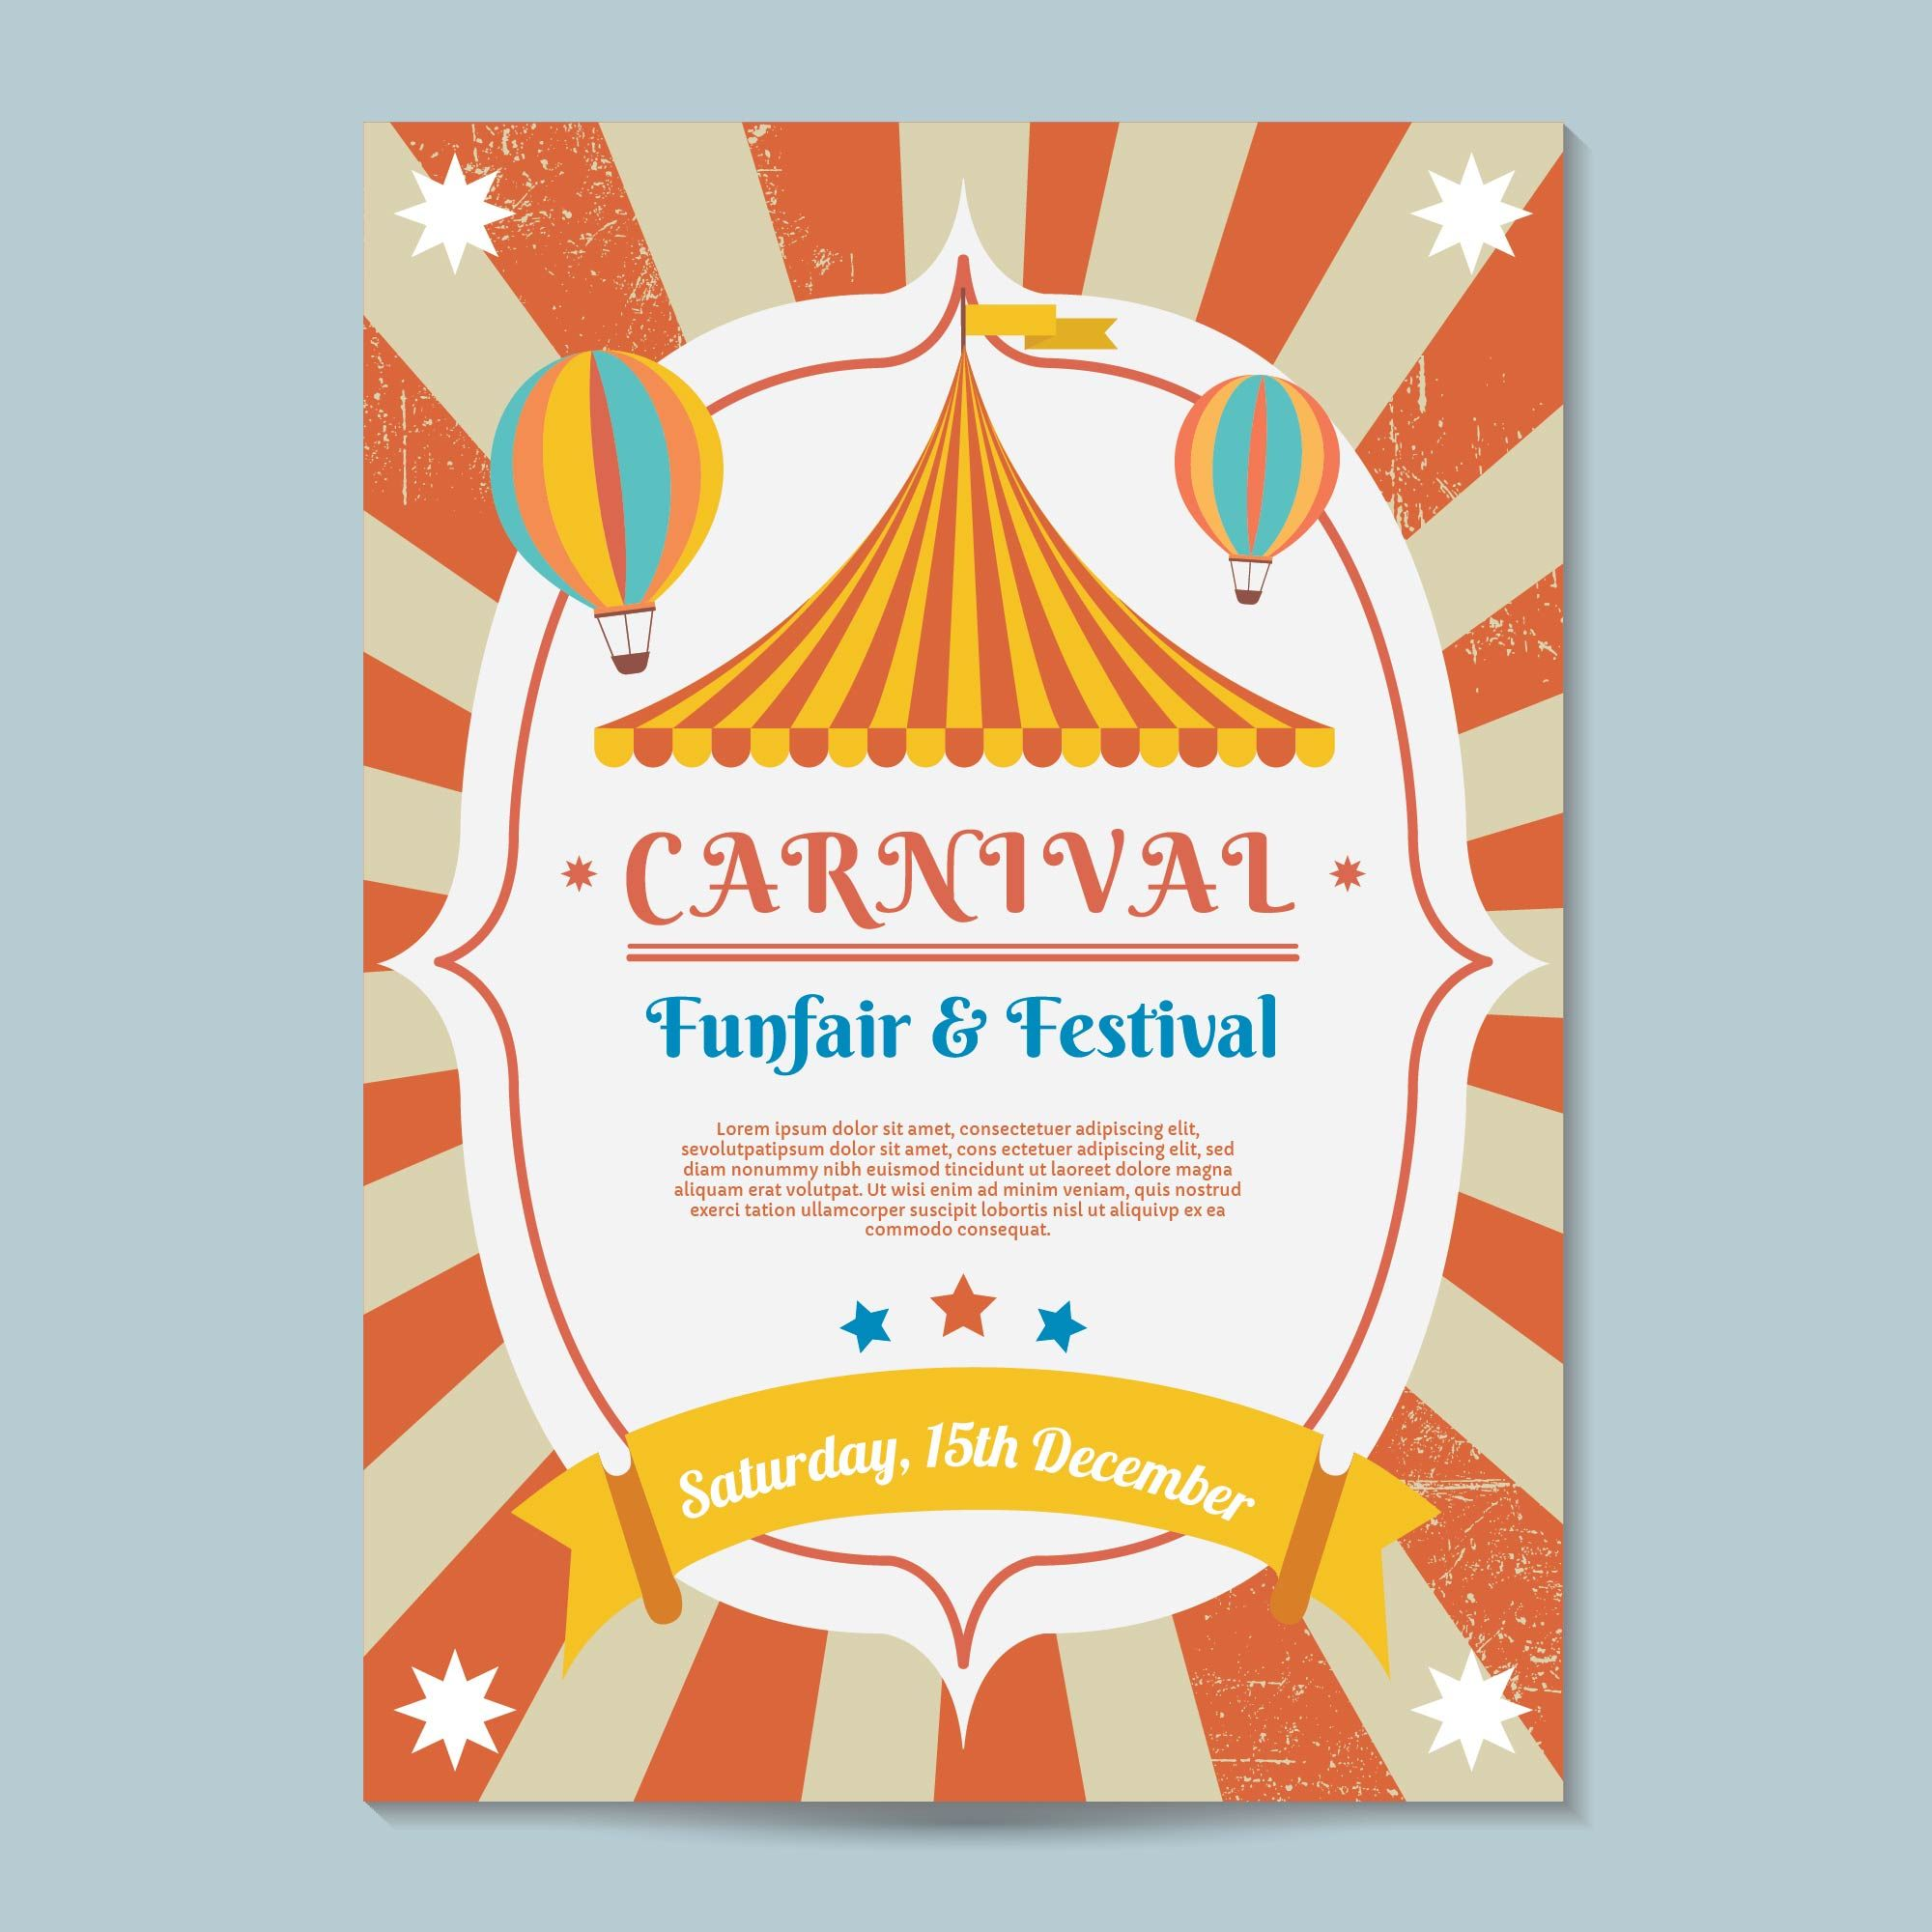 Carnival Poster Template Vector. Choose from thousands of ...